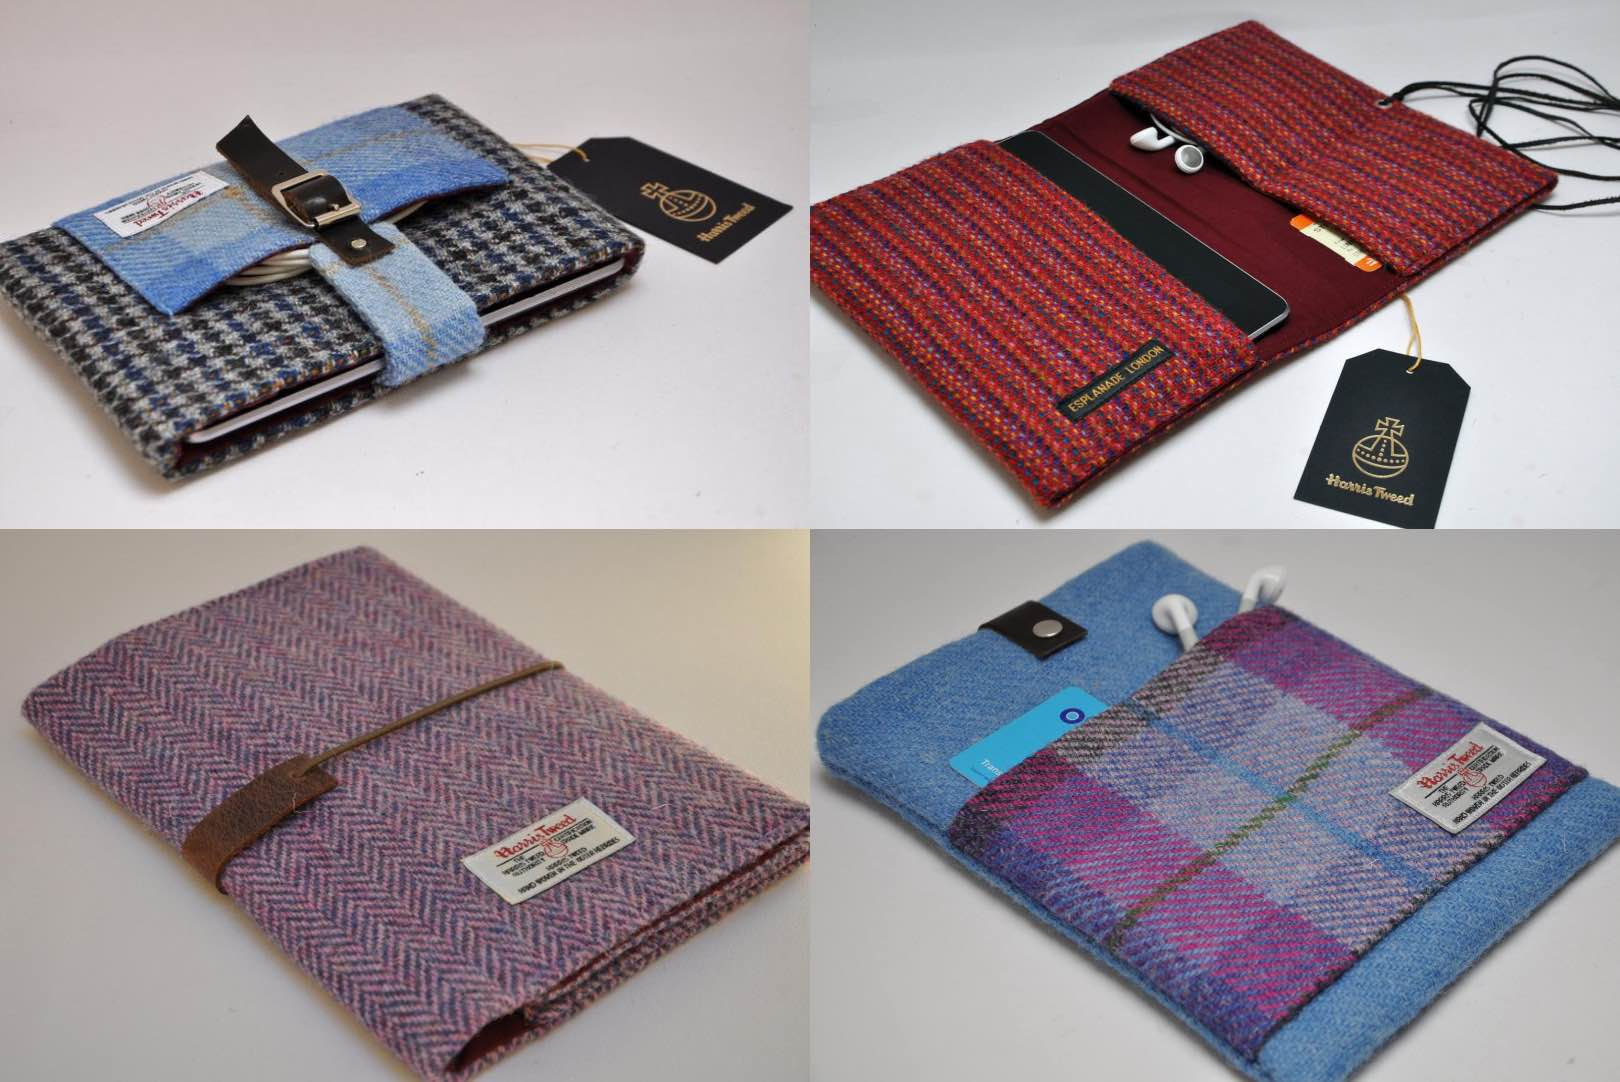 Pictured here are some of the shop's tablet/e-reader cases.